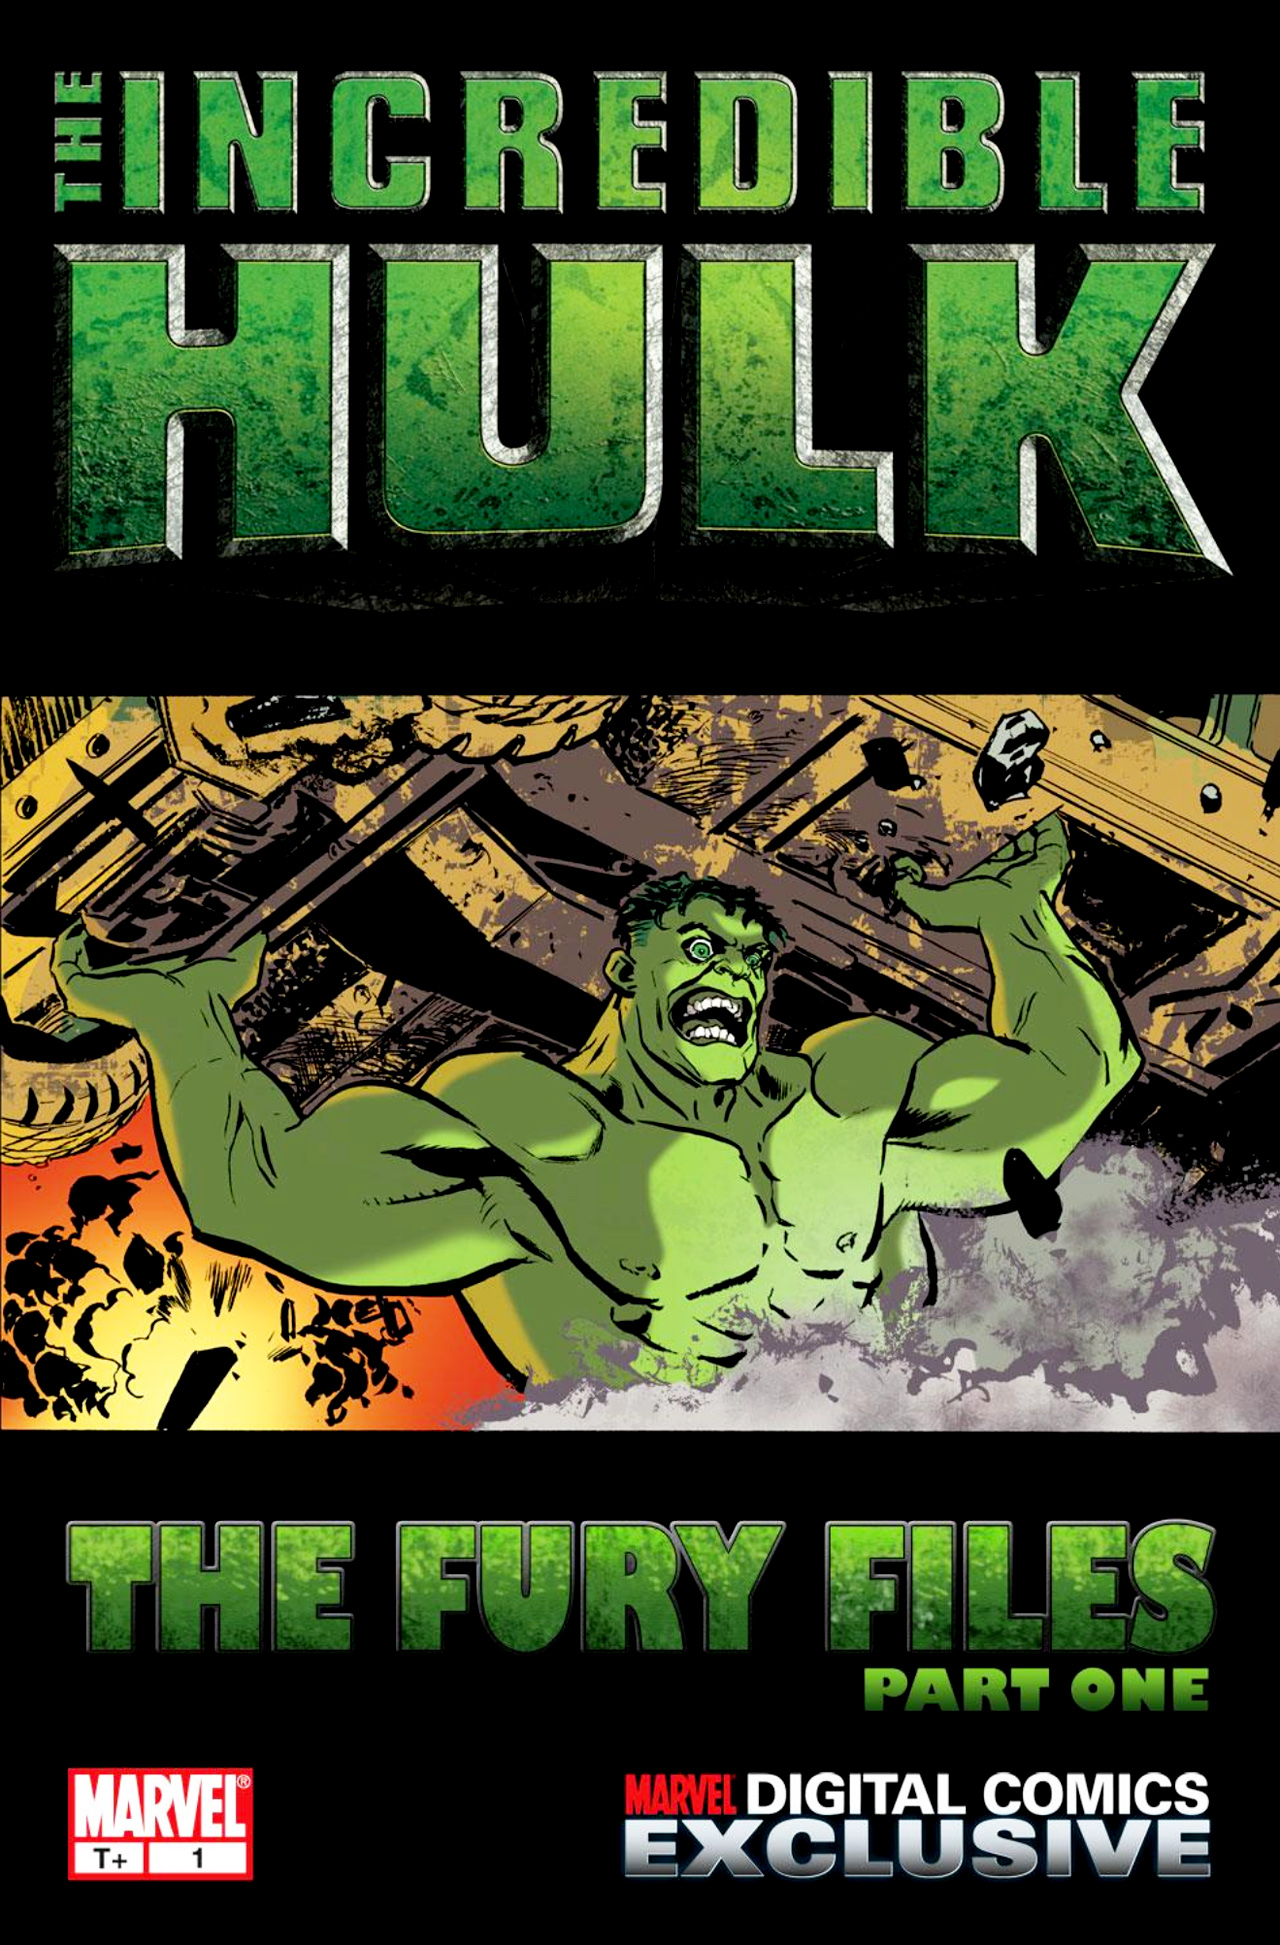 Read online Incredible Hulk: The Fury Files comic -  Issue #1 - 1